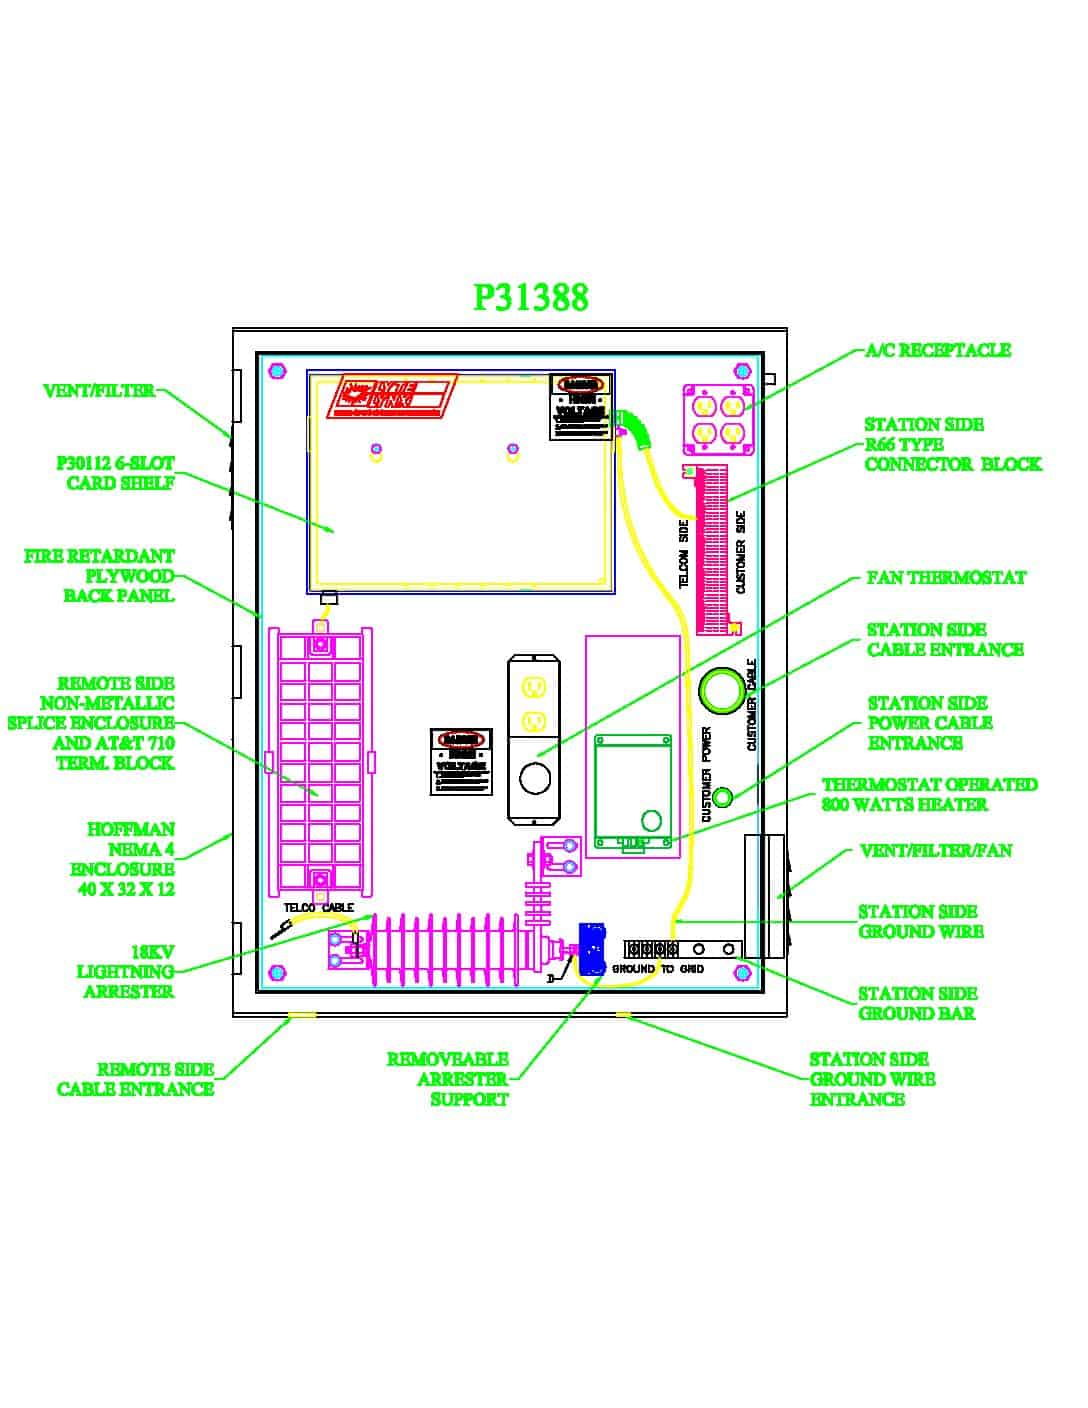 P31388 Turnkey Protection Packages – 6 slot PDF thumbnail